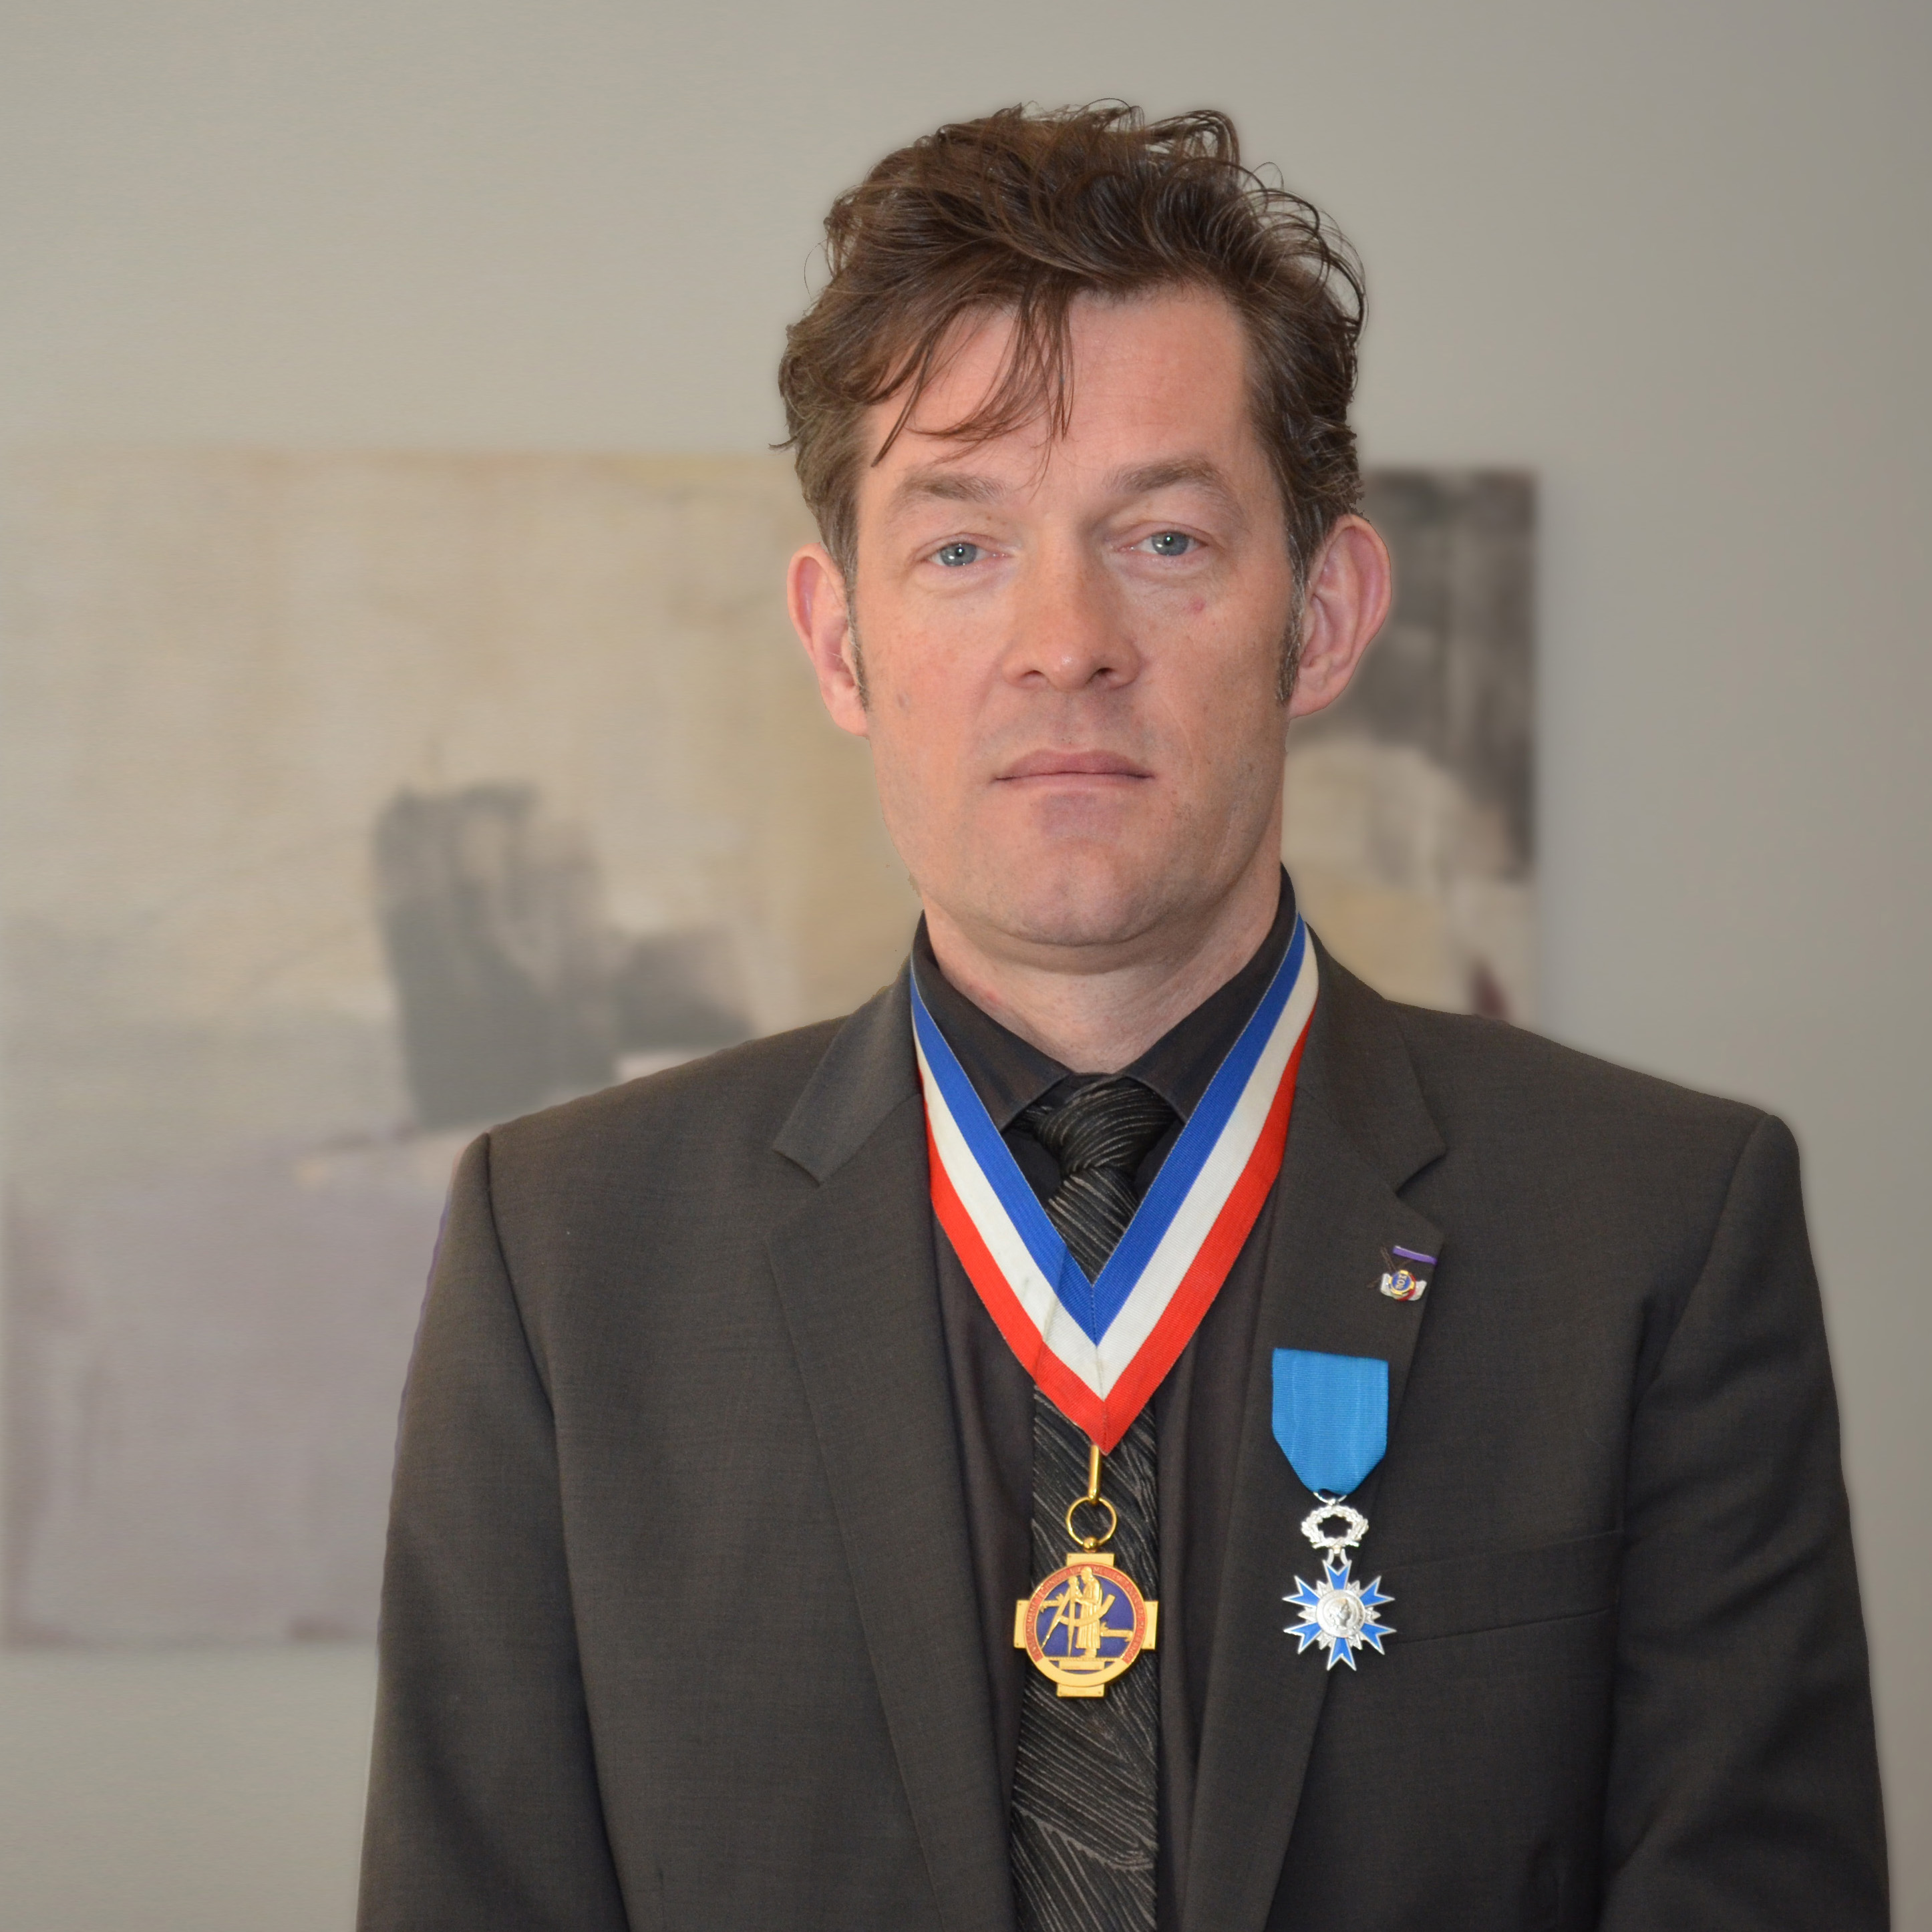 Nicolas Salagnac named Knight of the National Order of Merit